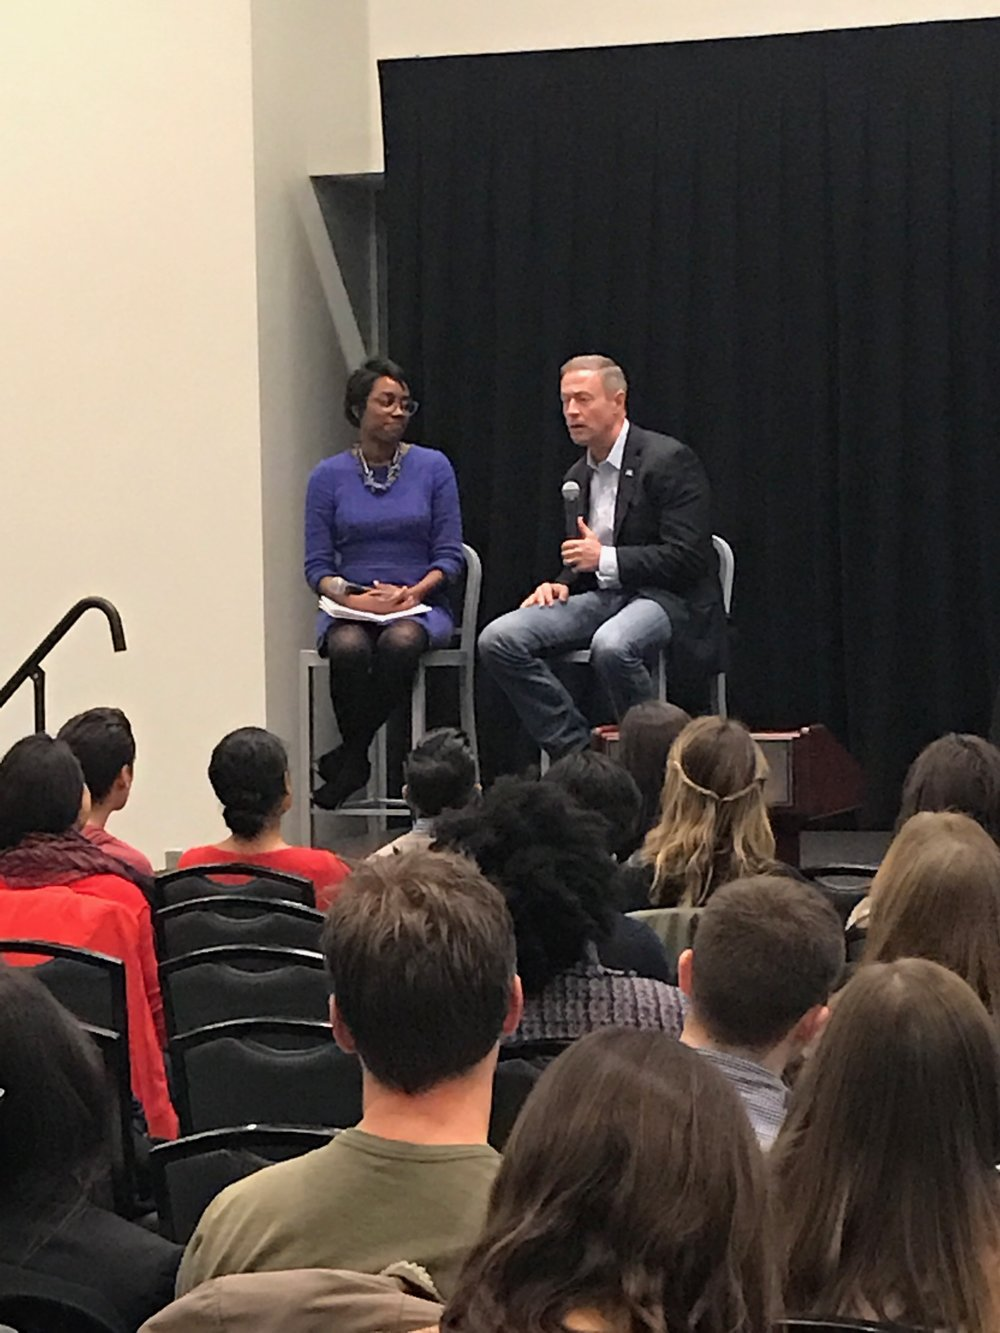 The Arena Summit, Keynote interview with fmr. Governor Martin O'Malley (D-MD), Nashville, TN